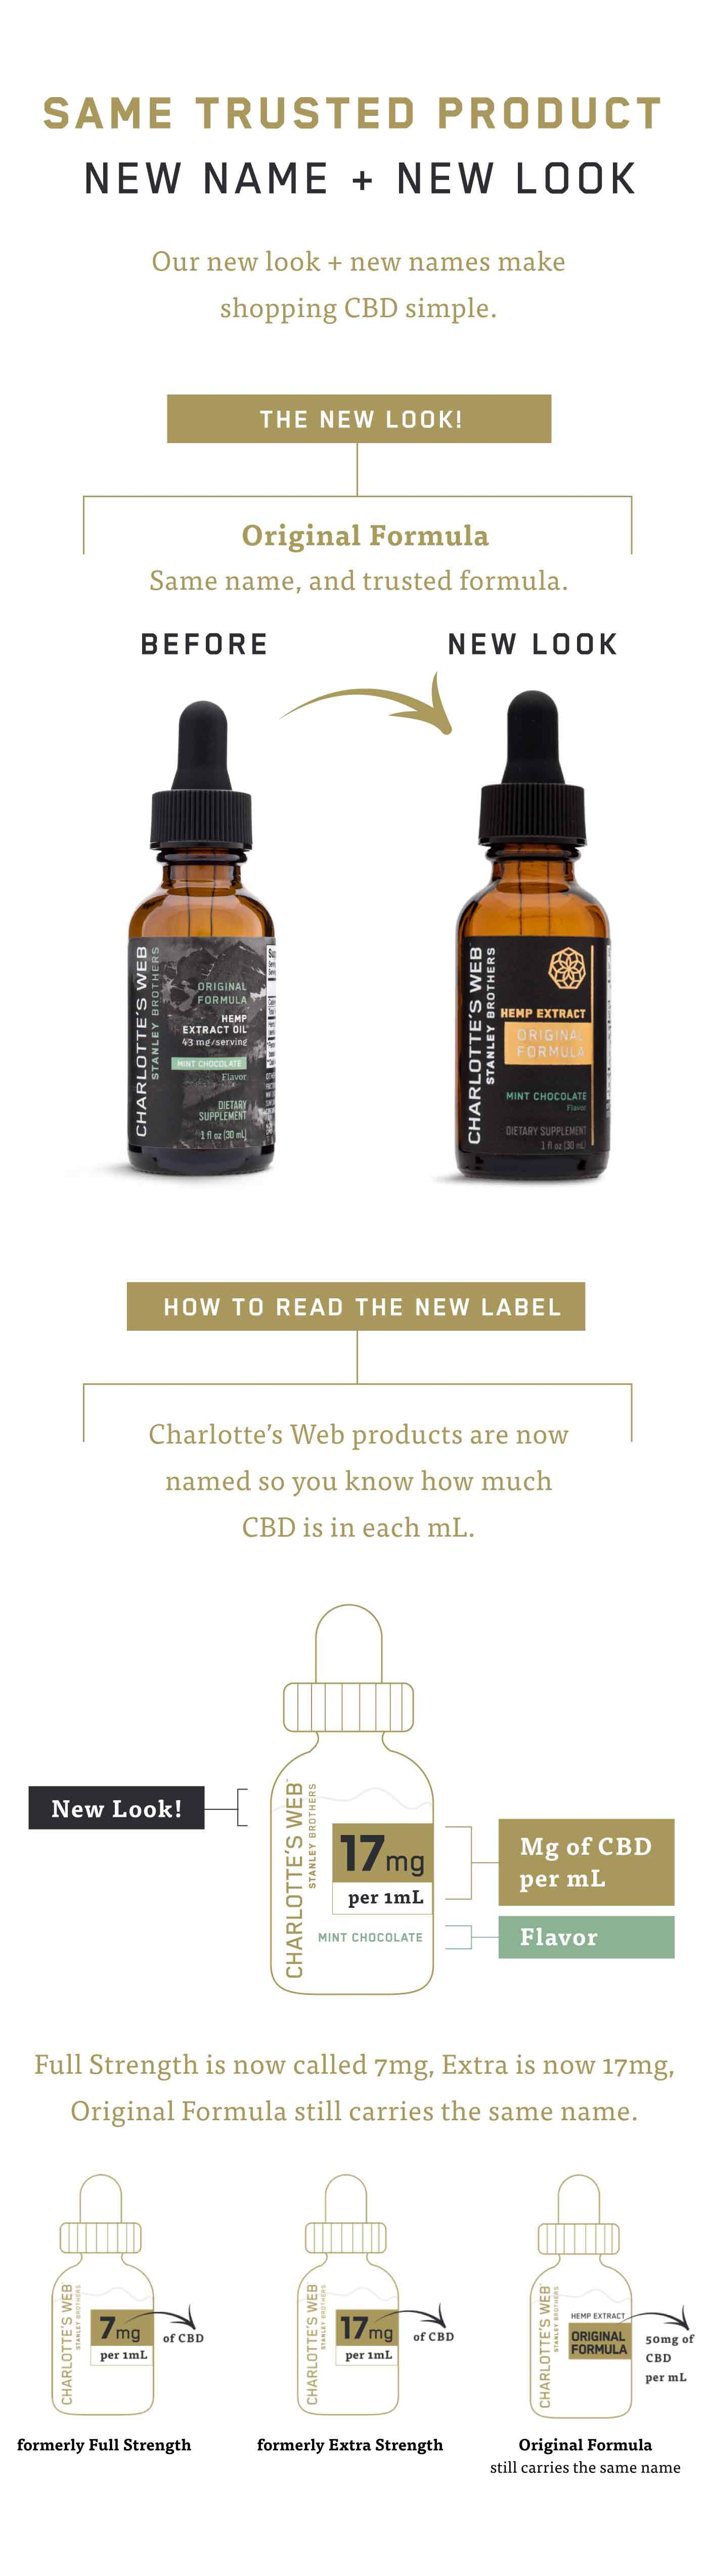 Learn more about our new labels infographic